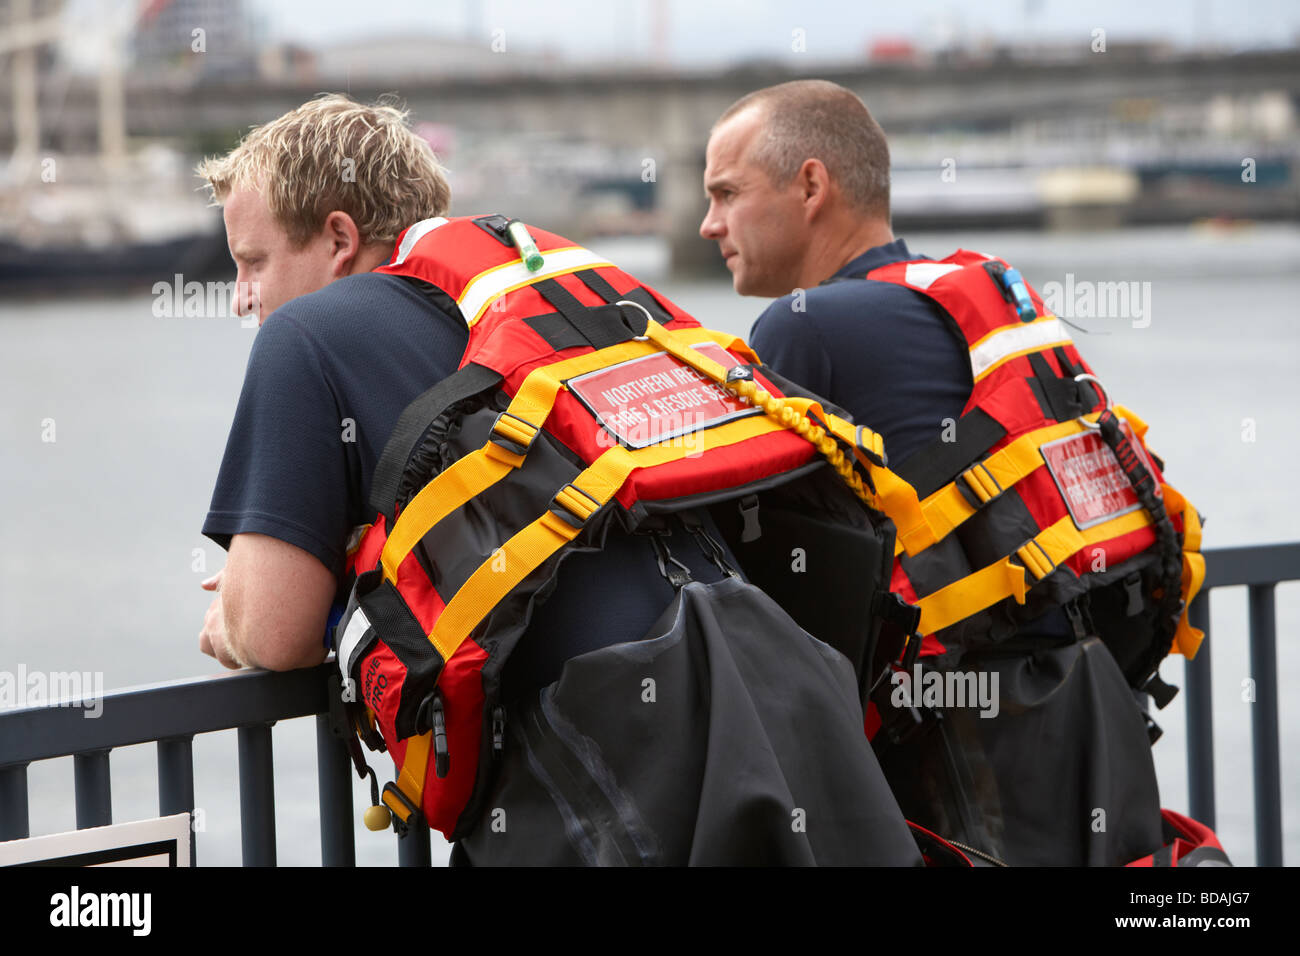 two members of the northern ireland fire and rescue service water rescue team watch proceedings at an event - Stock Image